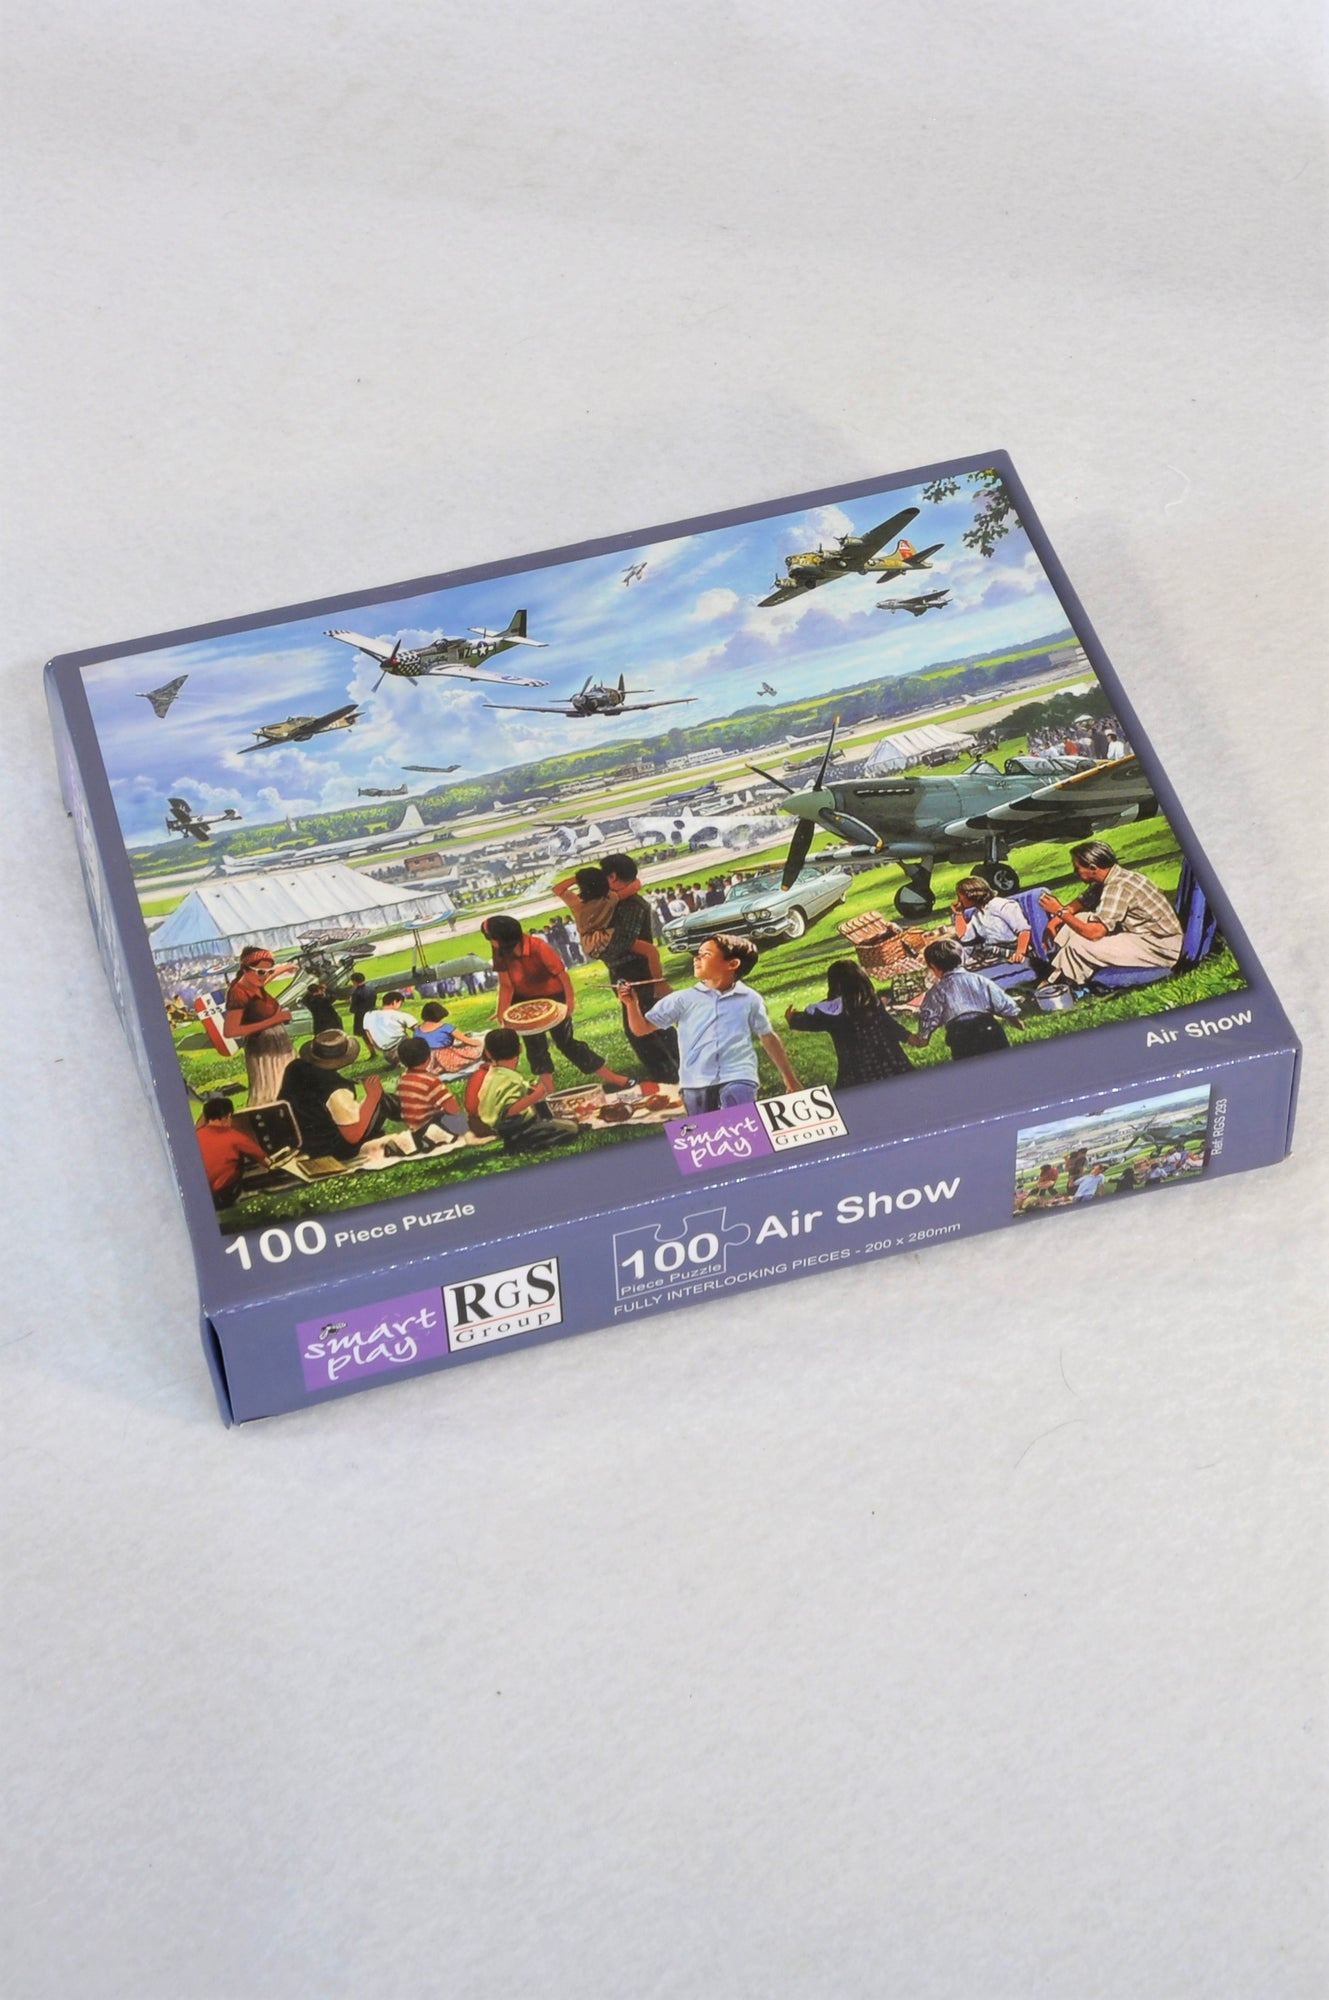 Smart Play 100 Piece Air Show Puzzle Unisex 5-10 years